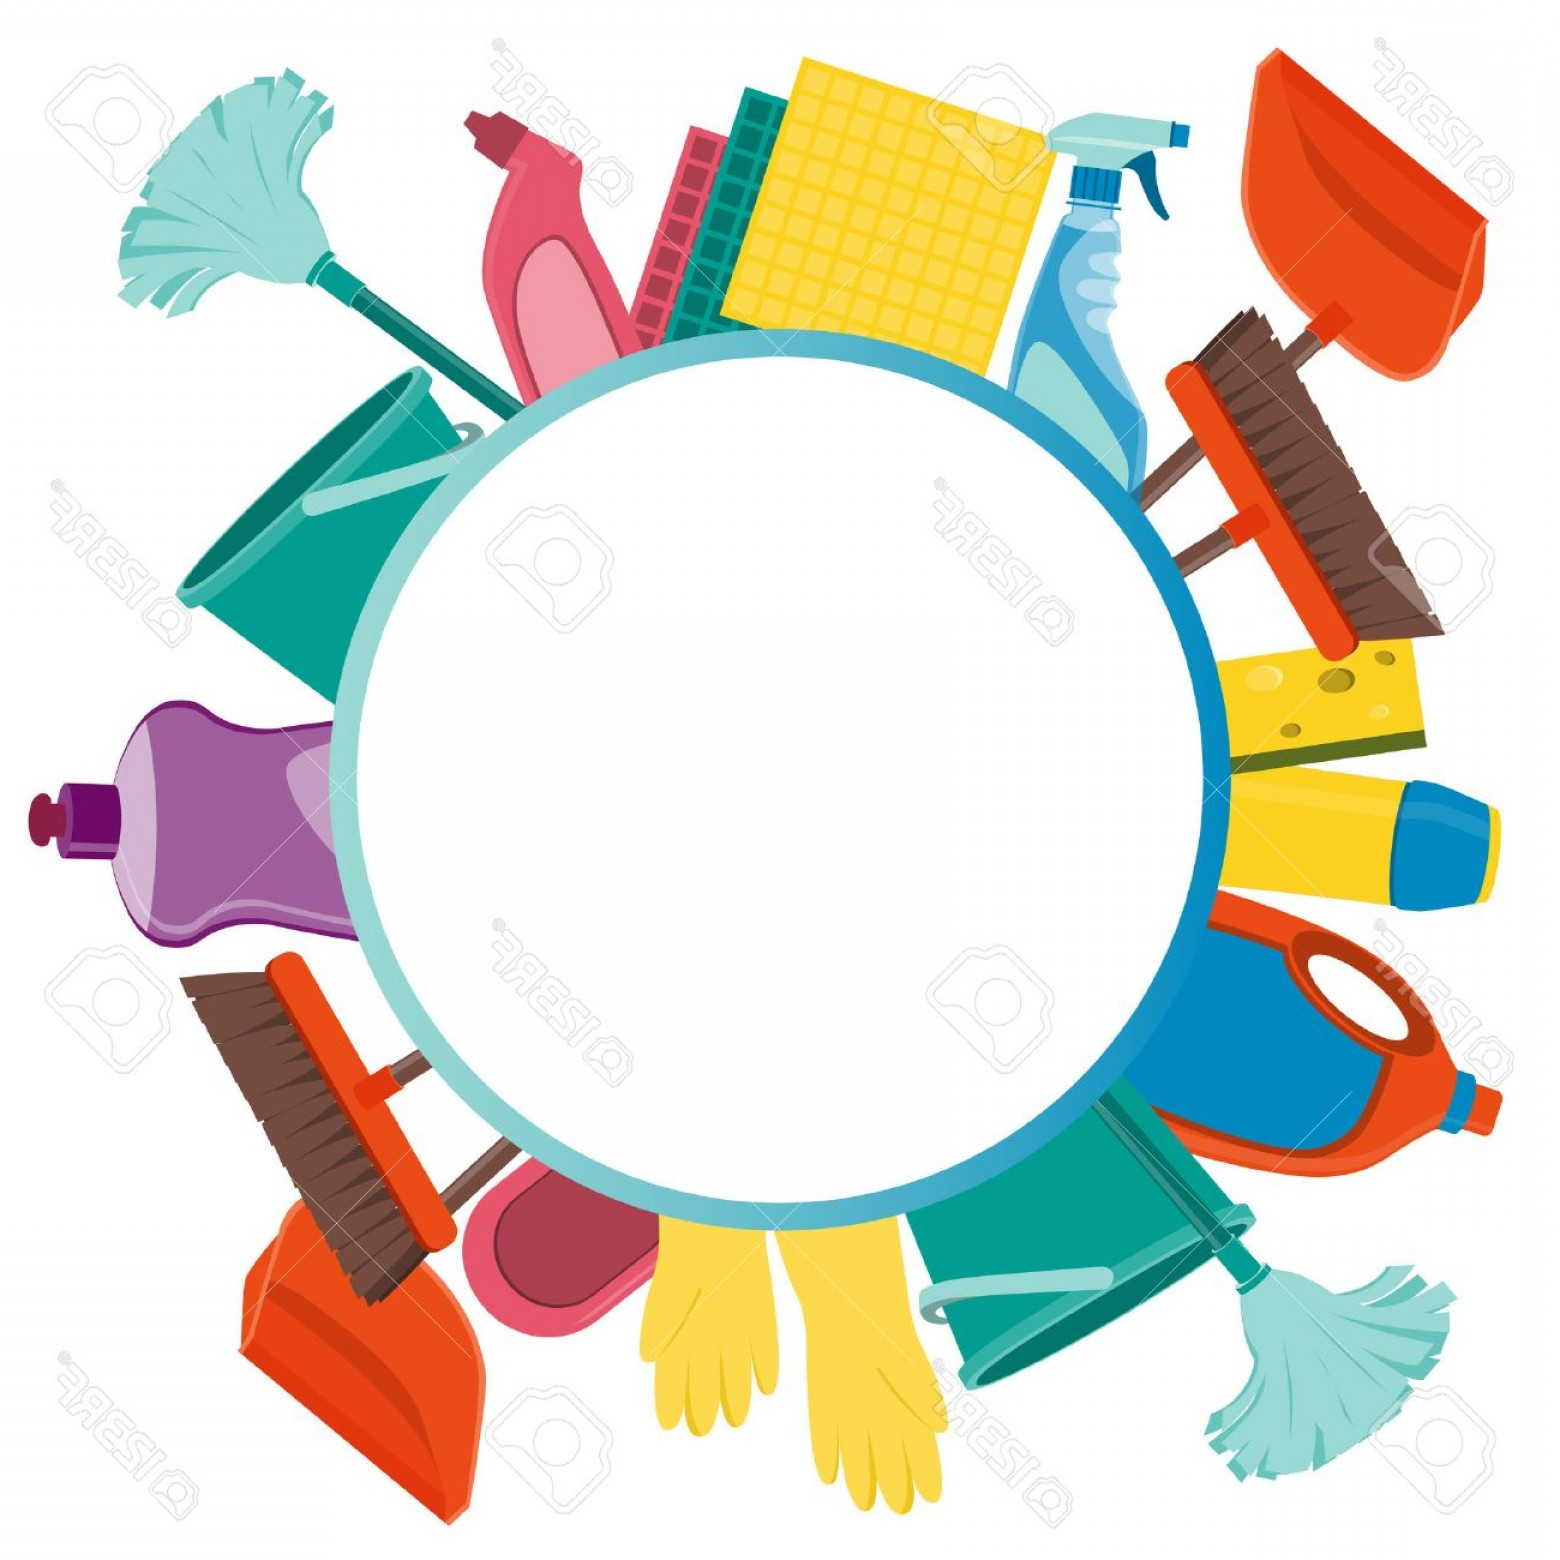 Cleaning Vector Background: Photostock Vector Round Background Tools For Cleaning Vector Illustration